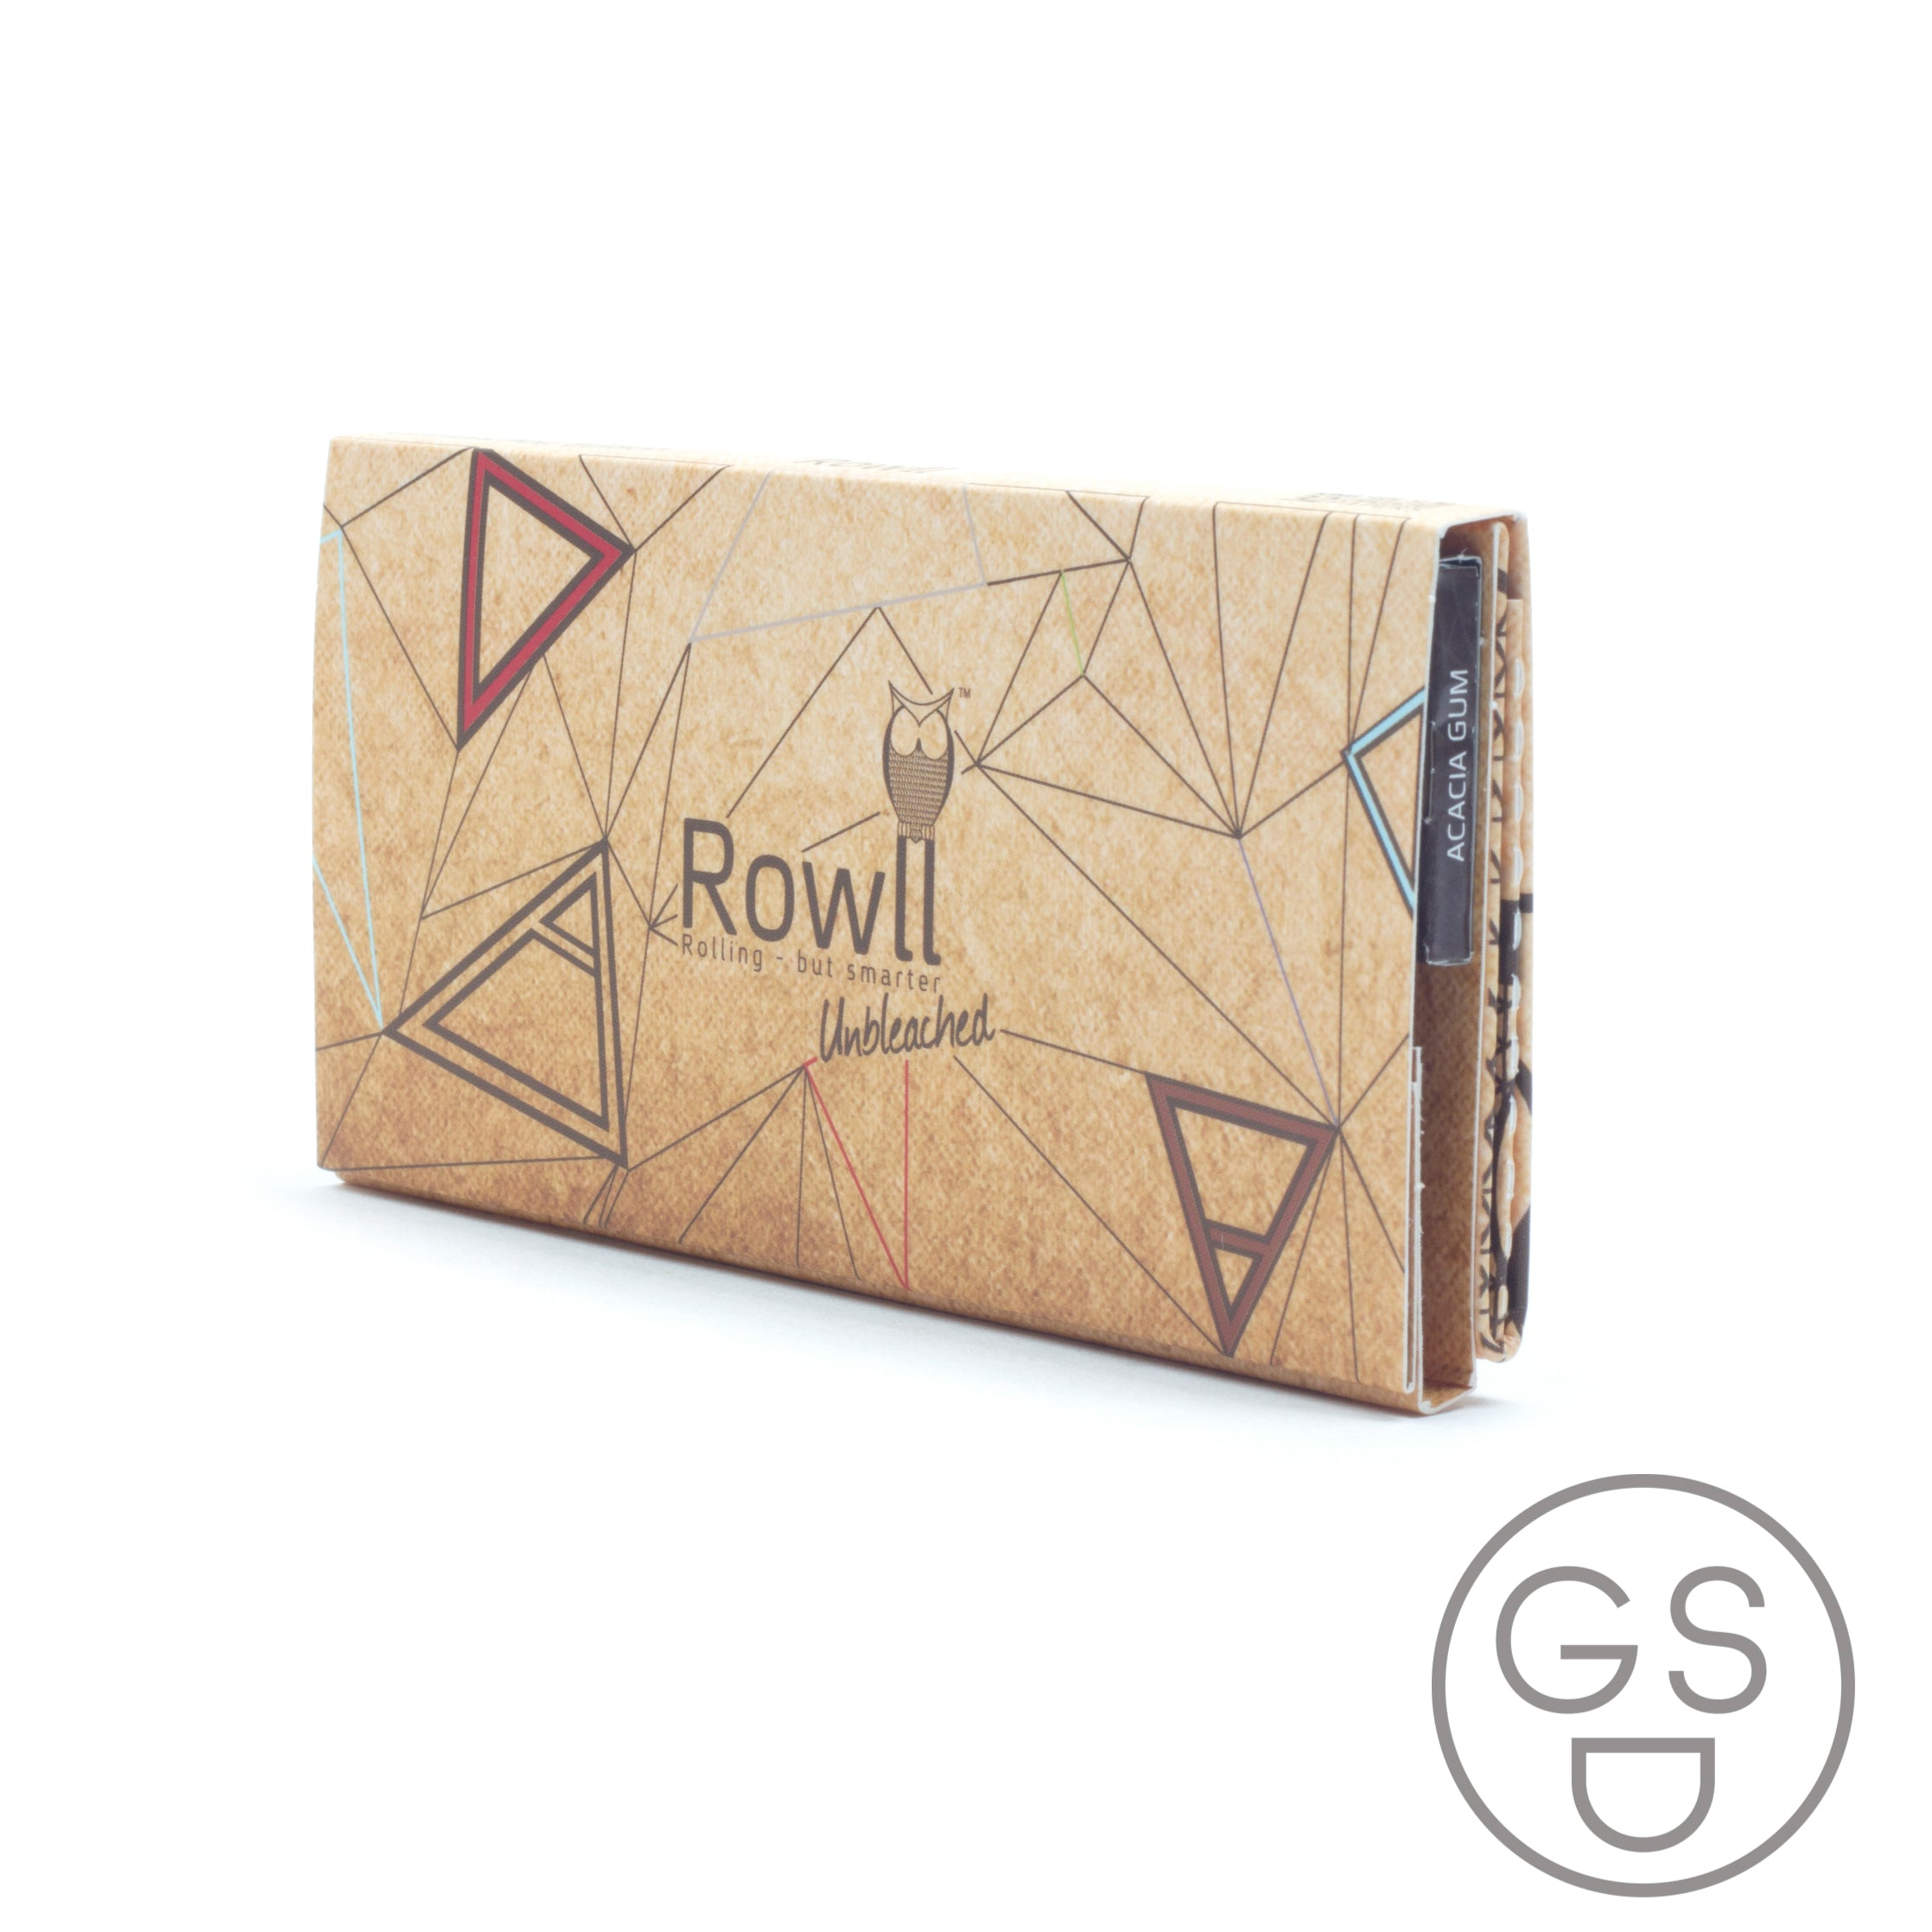 Rowll Rolling Papers - King Size Extra Slim/32 Leaves